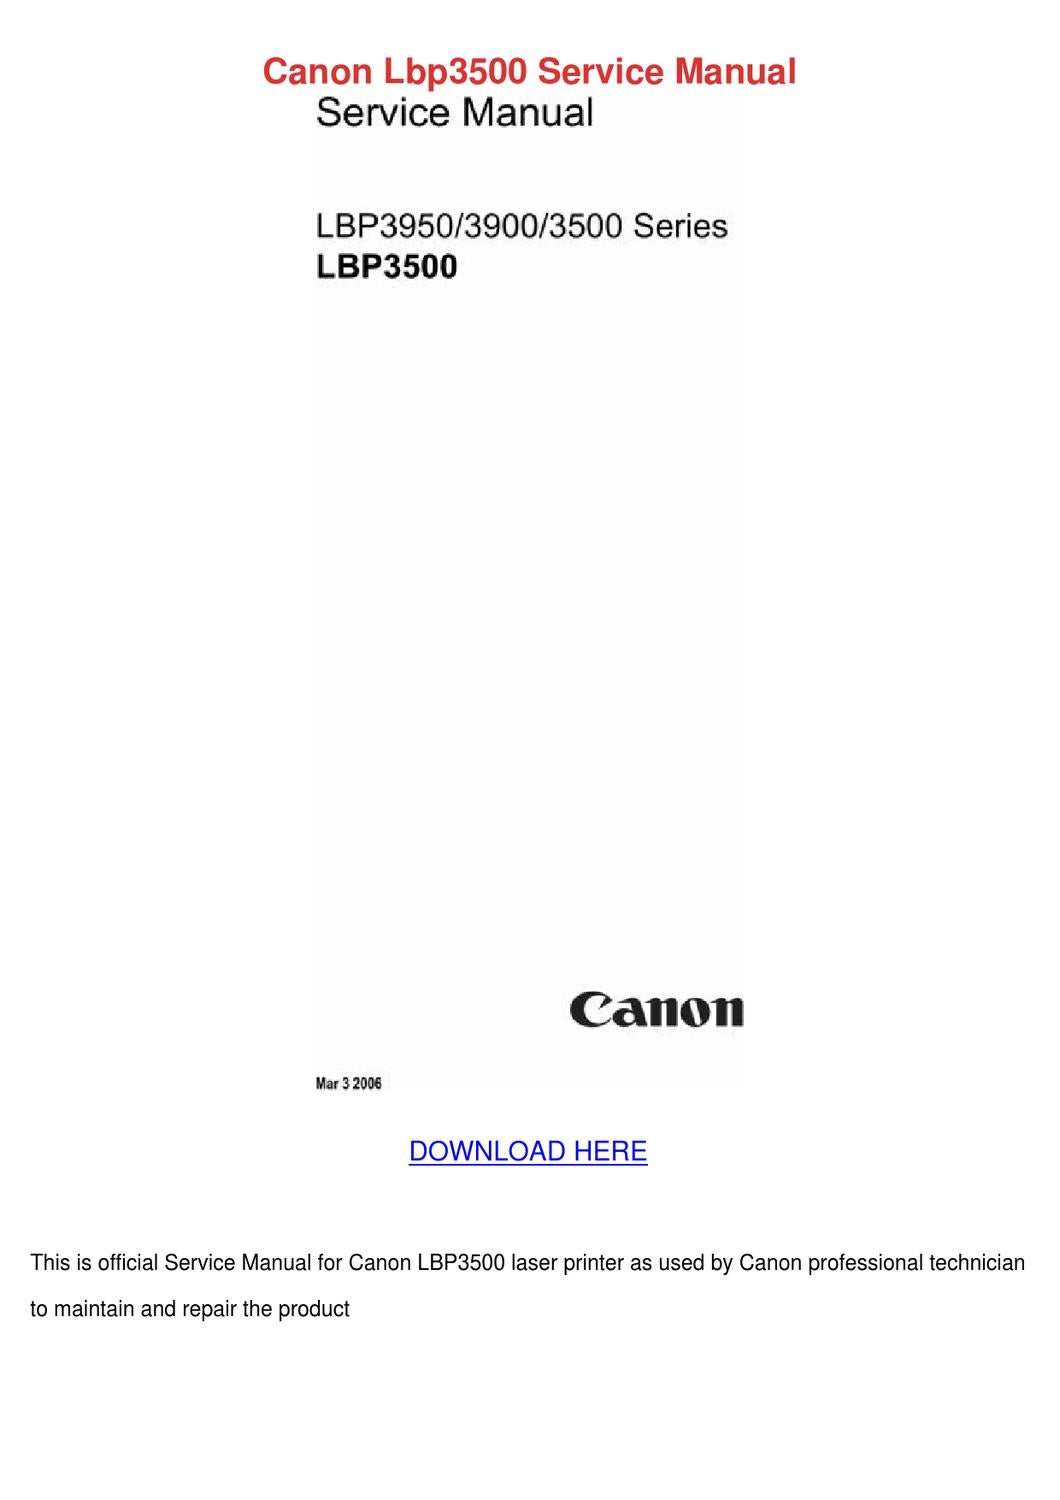 Mnl-8579] canon ir7105 ir7095 ir7086 series service manual | 2019.